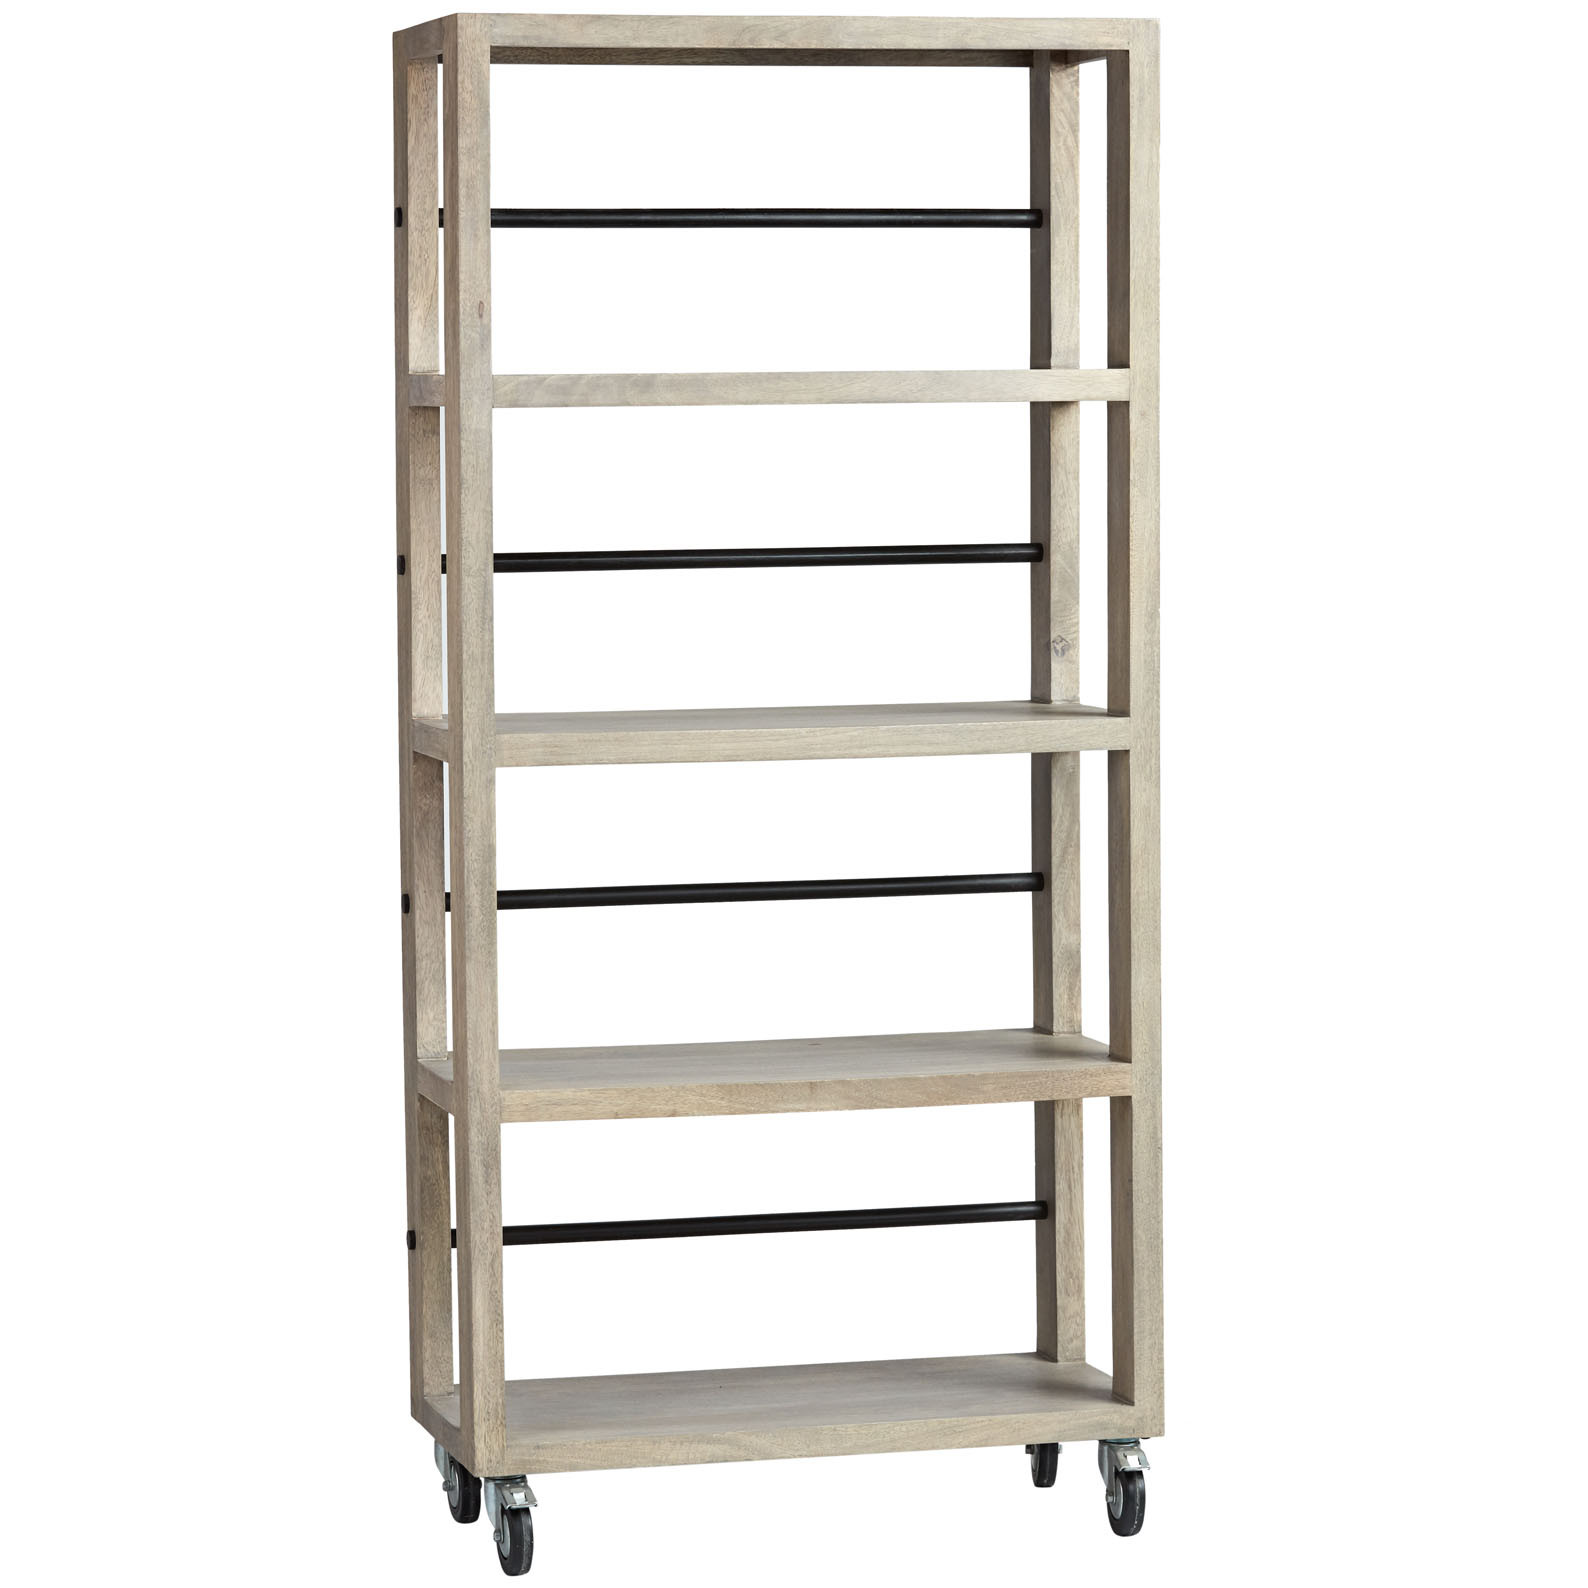 MAYFAIR SHELVING UNIT